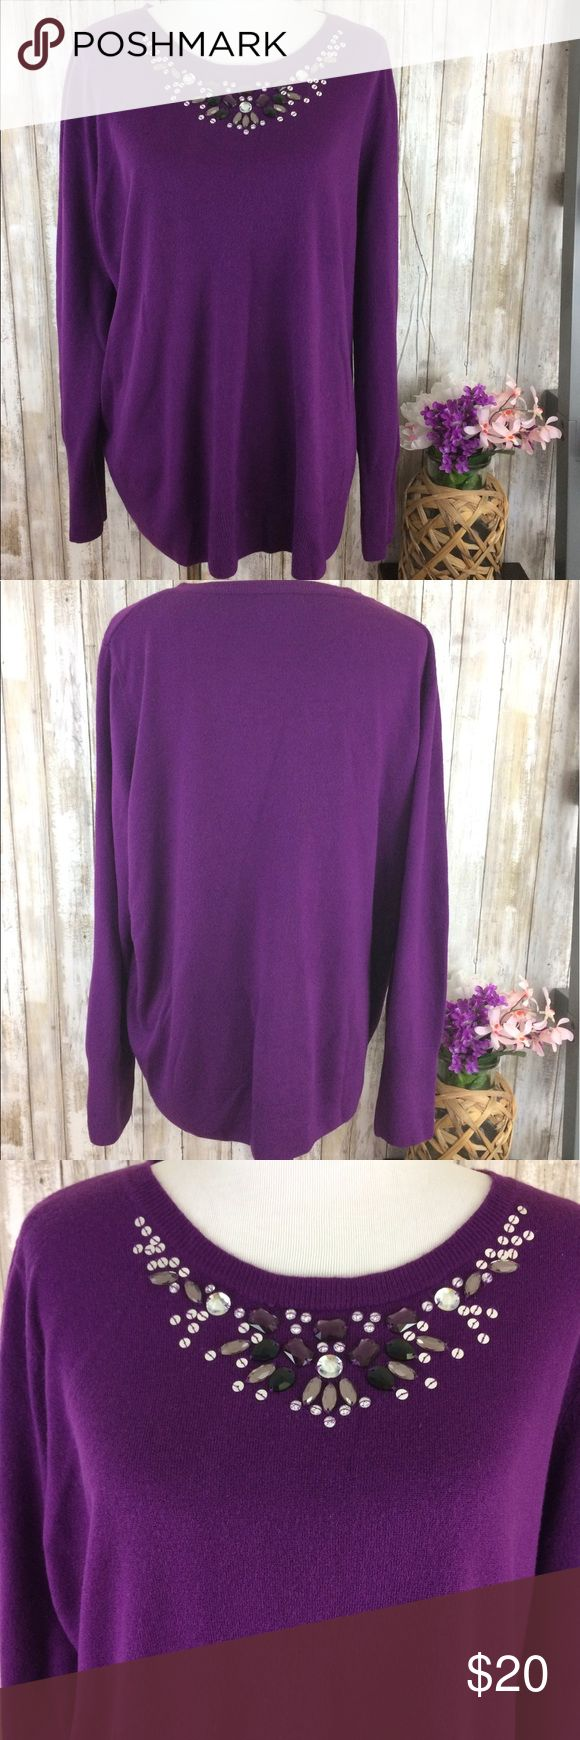 Plus Size Purple Sweater Embellished Sequins 3x Roz & Ali women's plus size sweater. Gorgeous purple color with Embellished neckline. Beading and Sequins. Excellent used condition. 3x Sweaters Crew & Scoop Necks